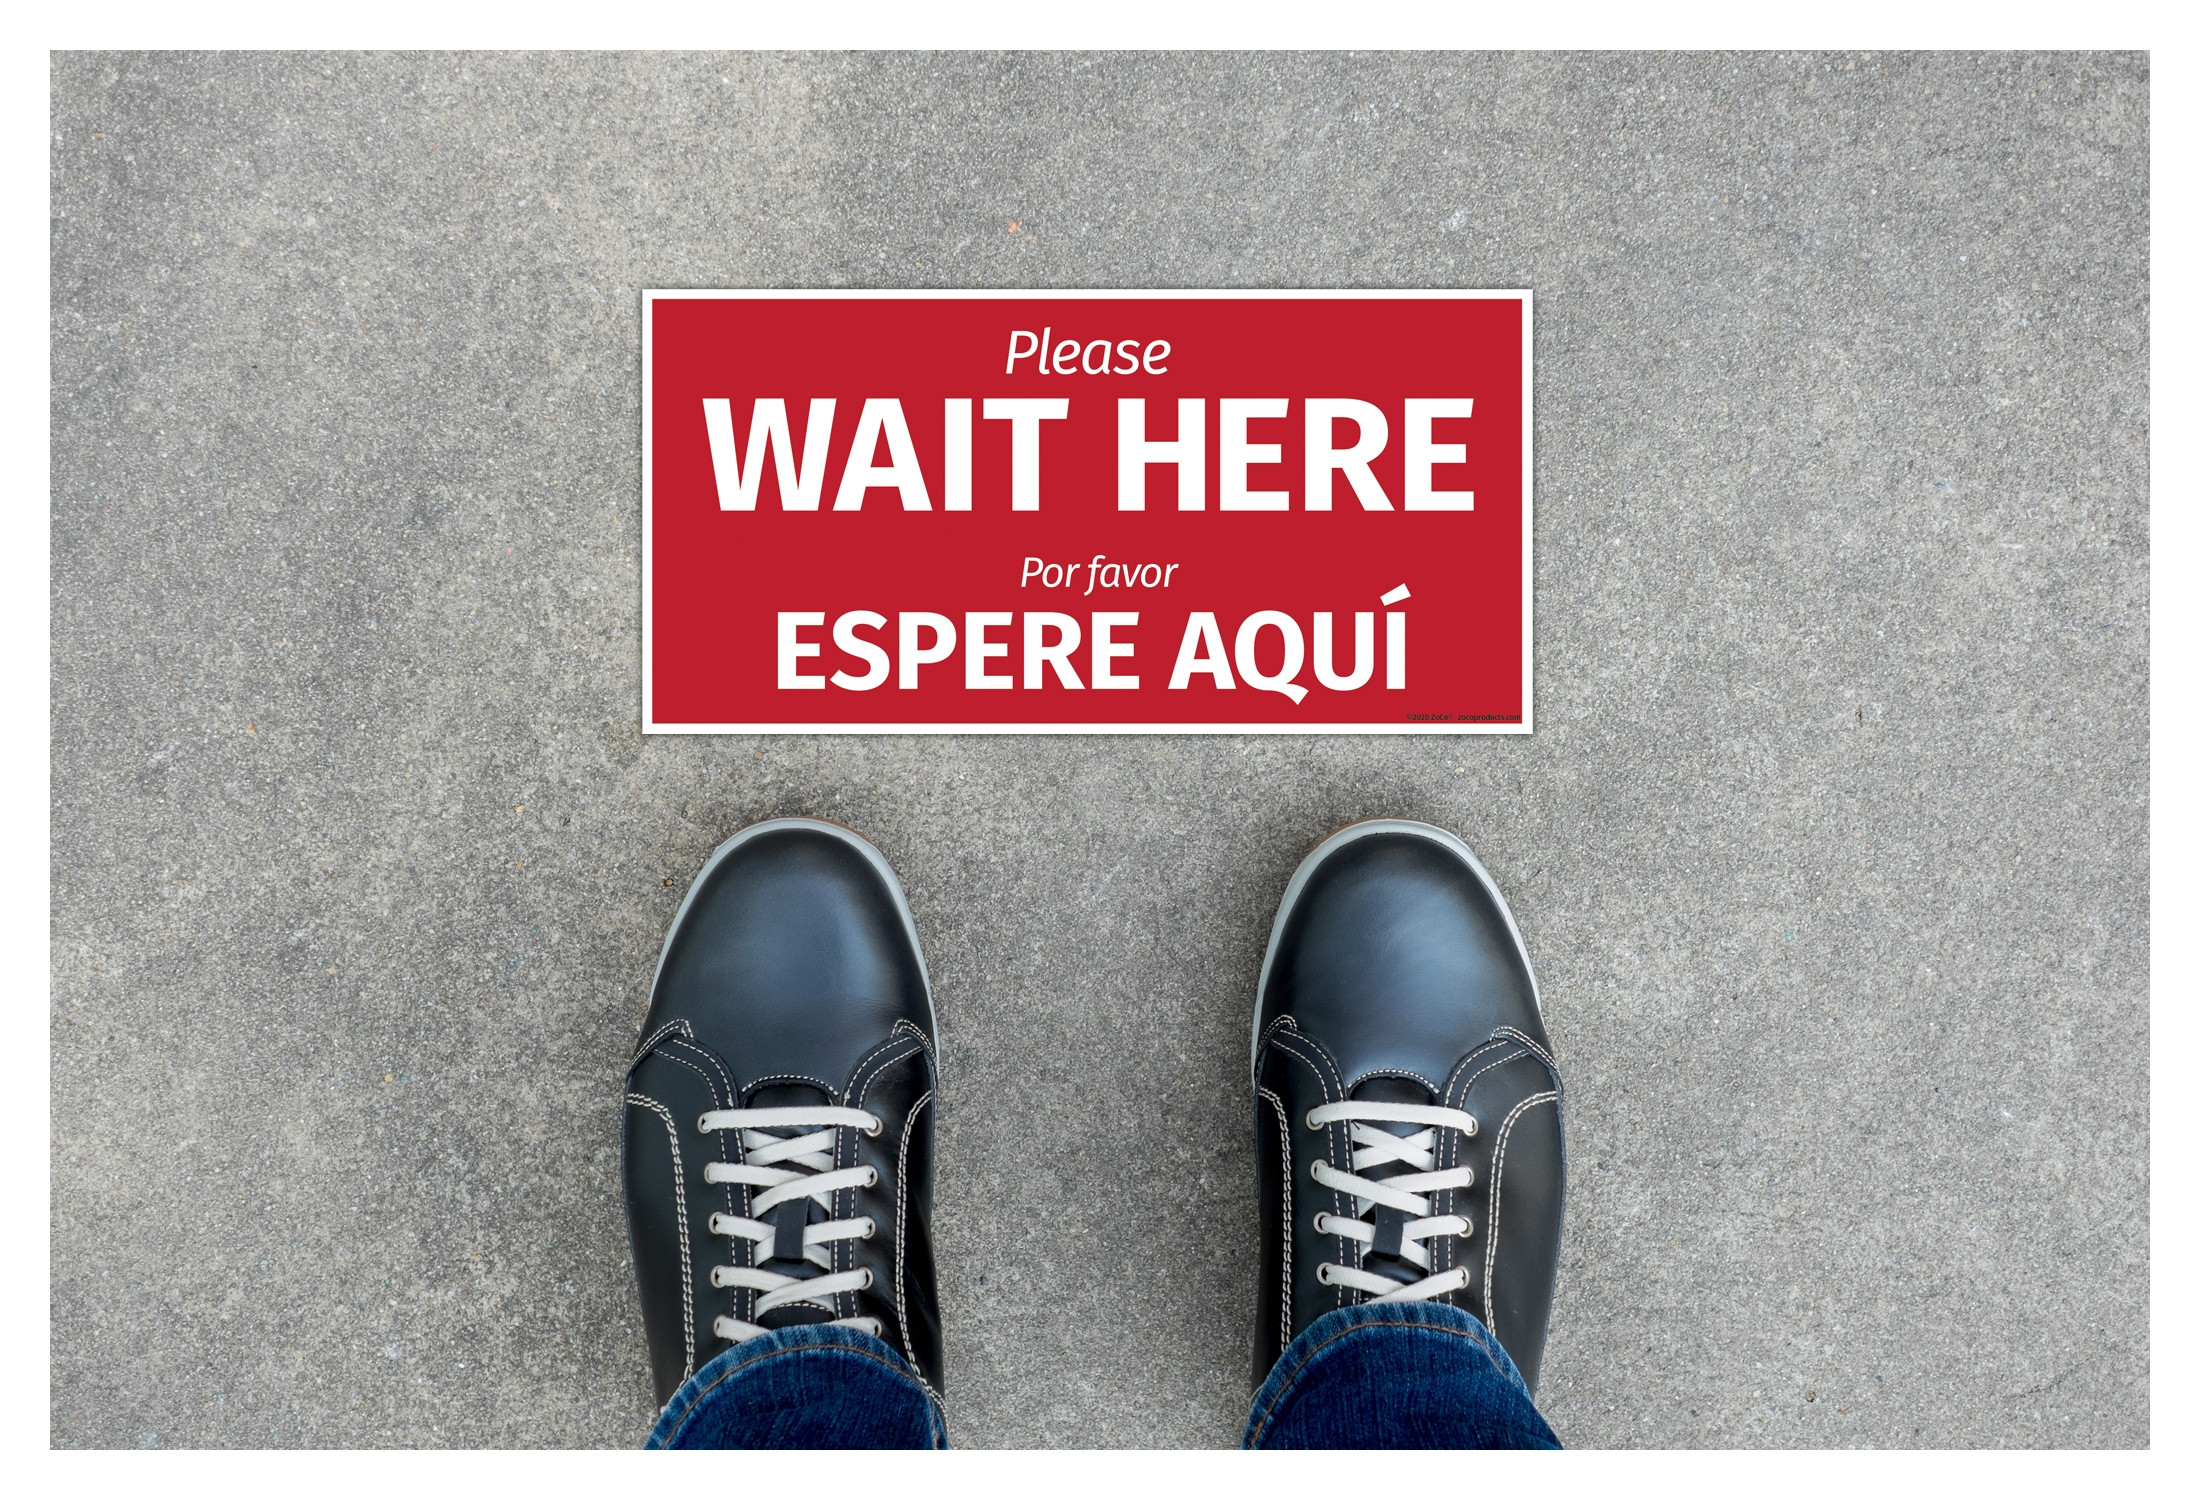 """Wait Here"", English/Spanish, Floor Decal Sign"